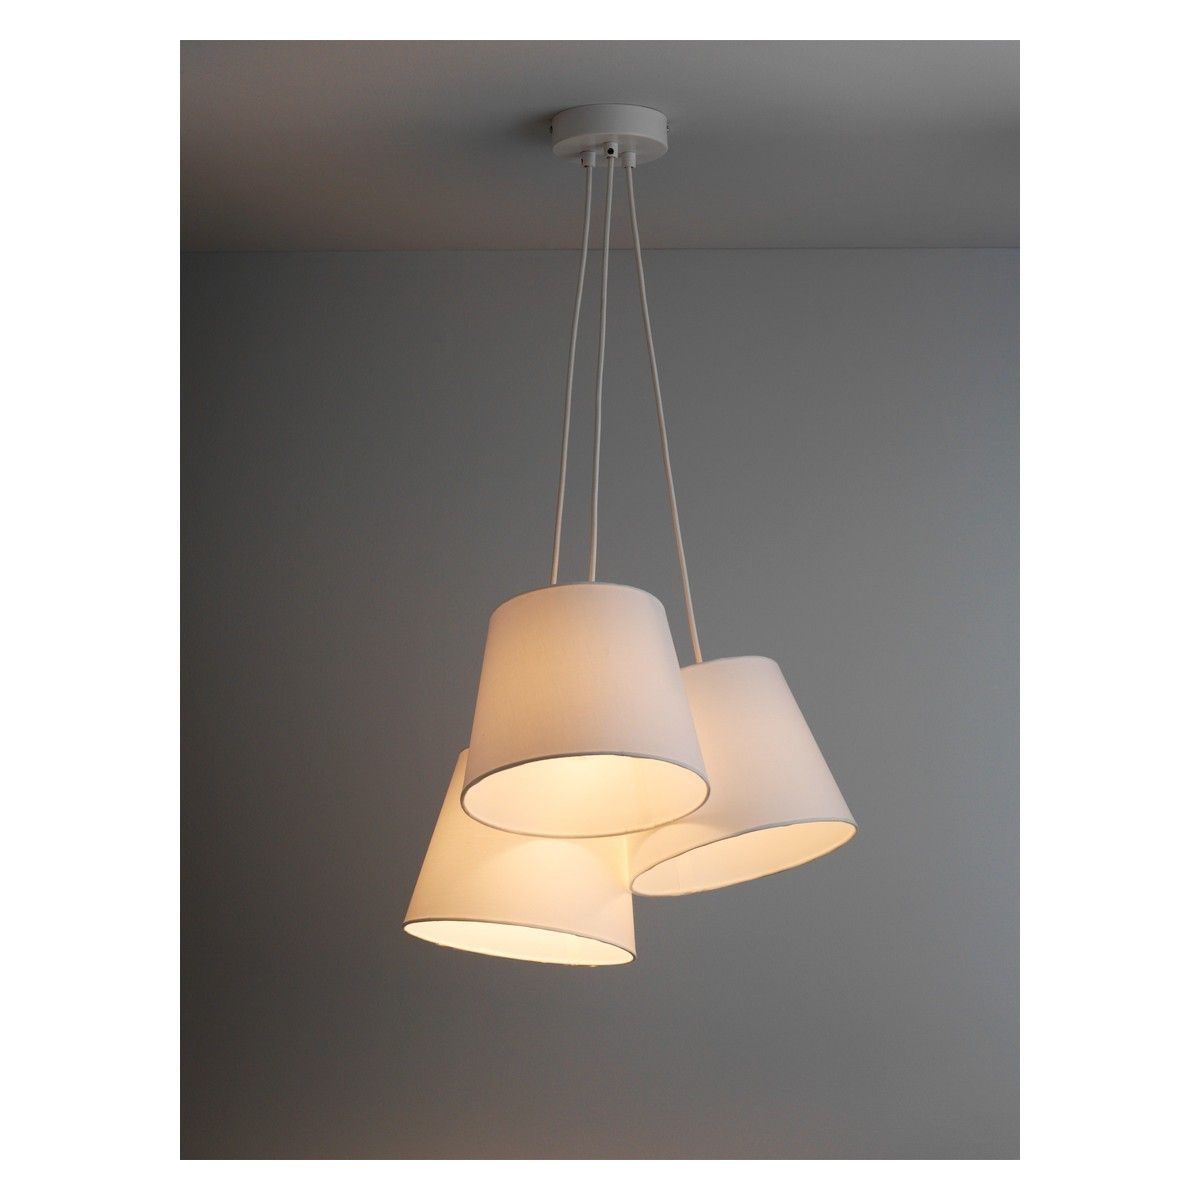 TIPP 3 Drop Cluster Ceiling Light With White Fabric Shades